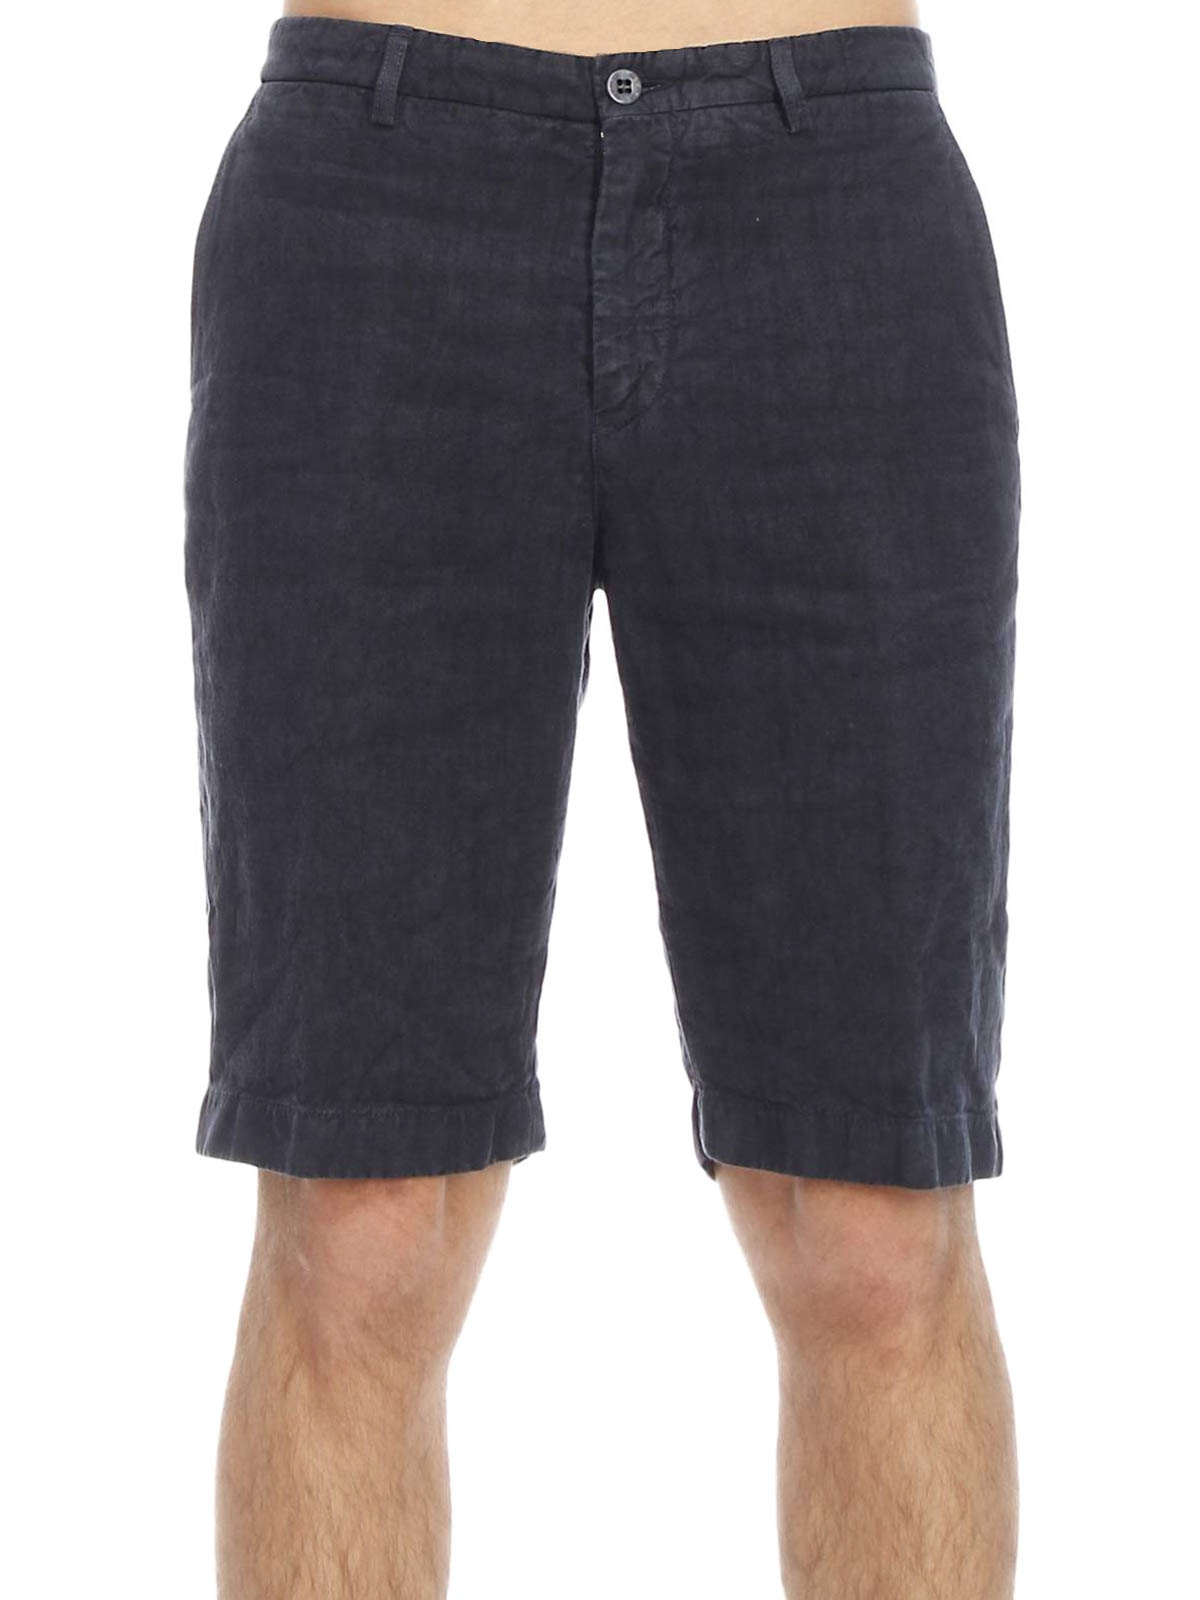 TROUSERS - Bermuda shorts Etro g069lb